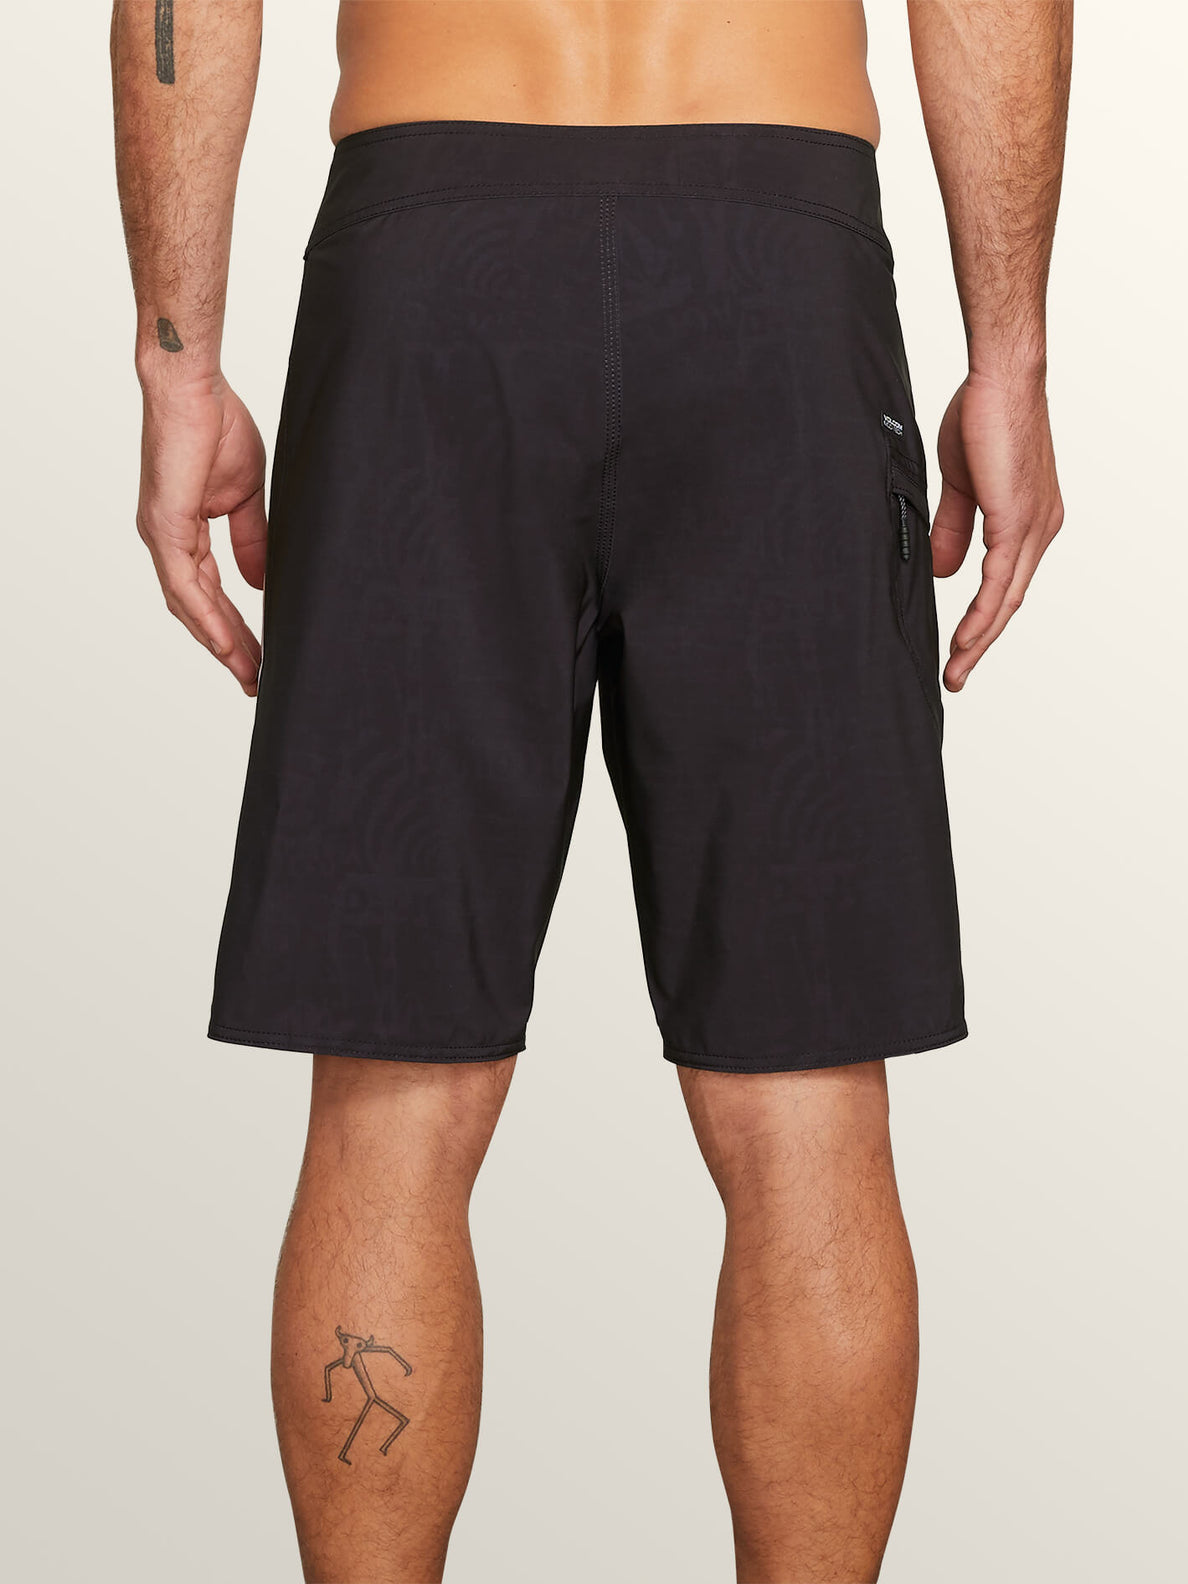 Deadly Stones Mod Boardshorts In Black, Back View